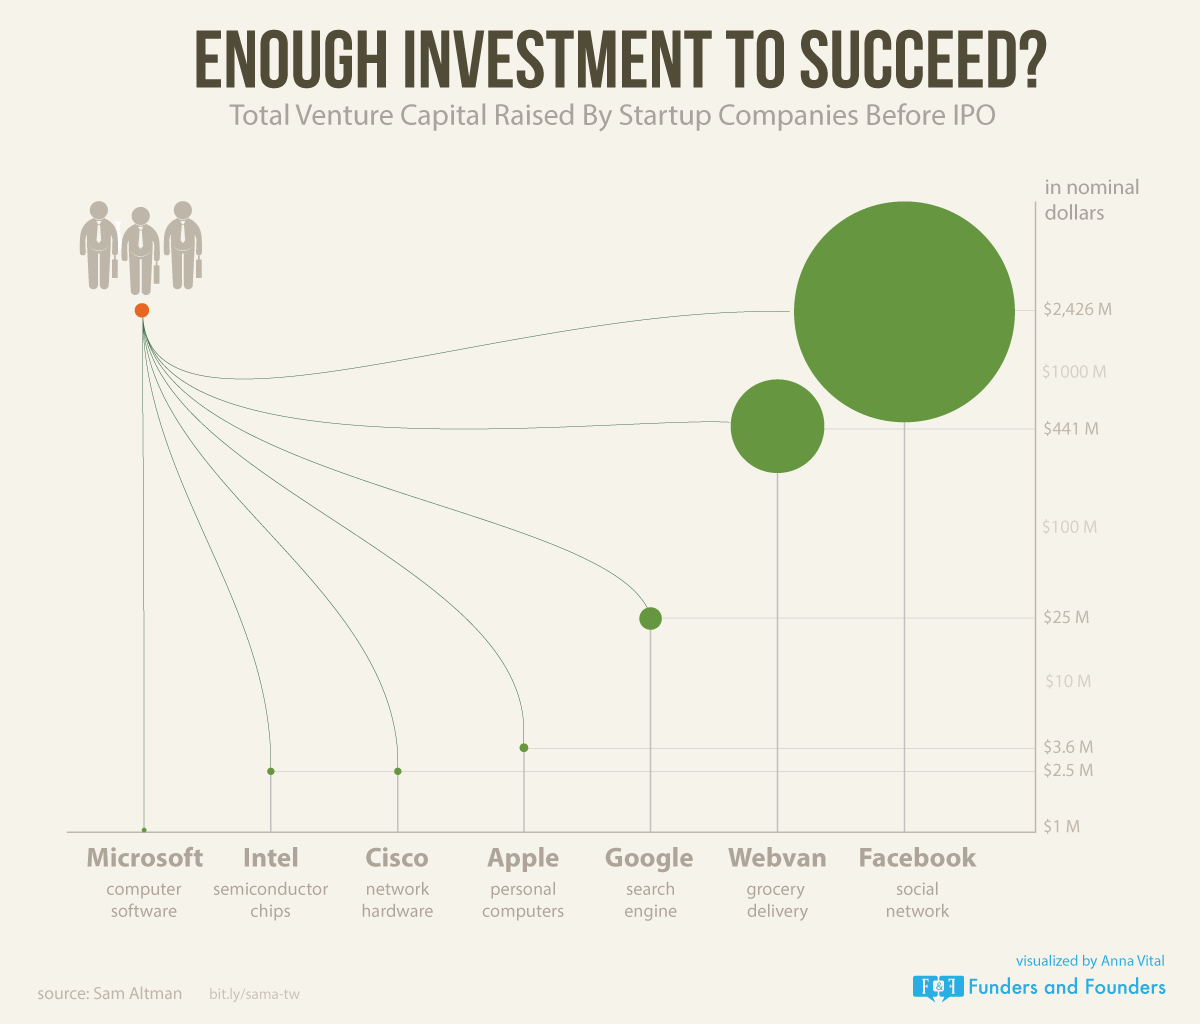 enough-investment-to-succeed-infographic